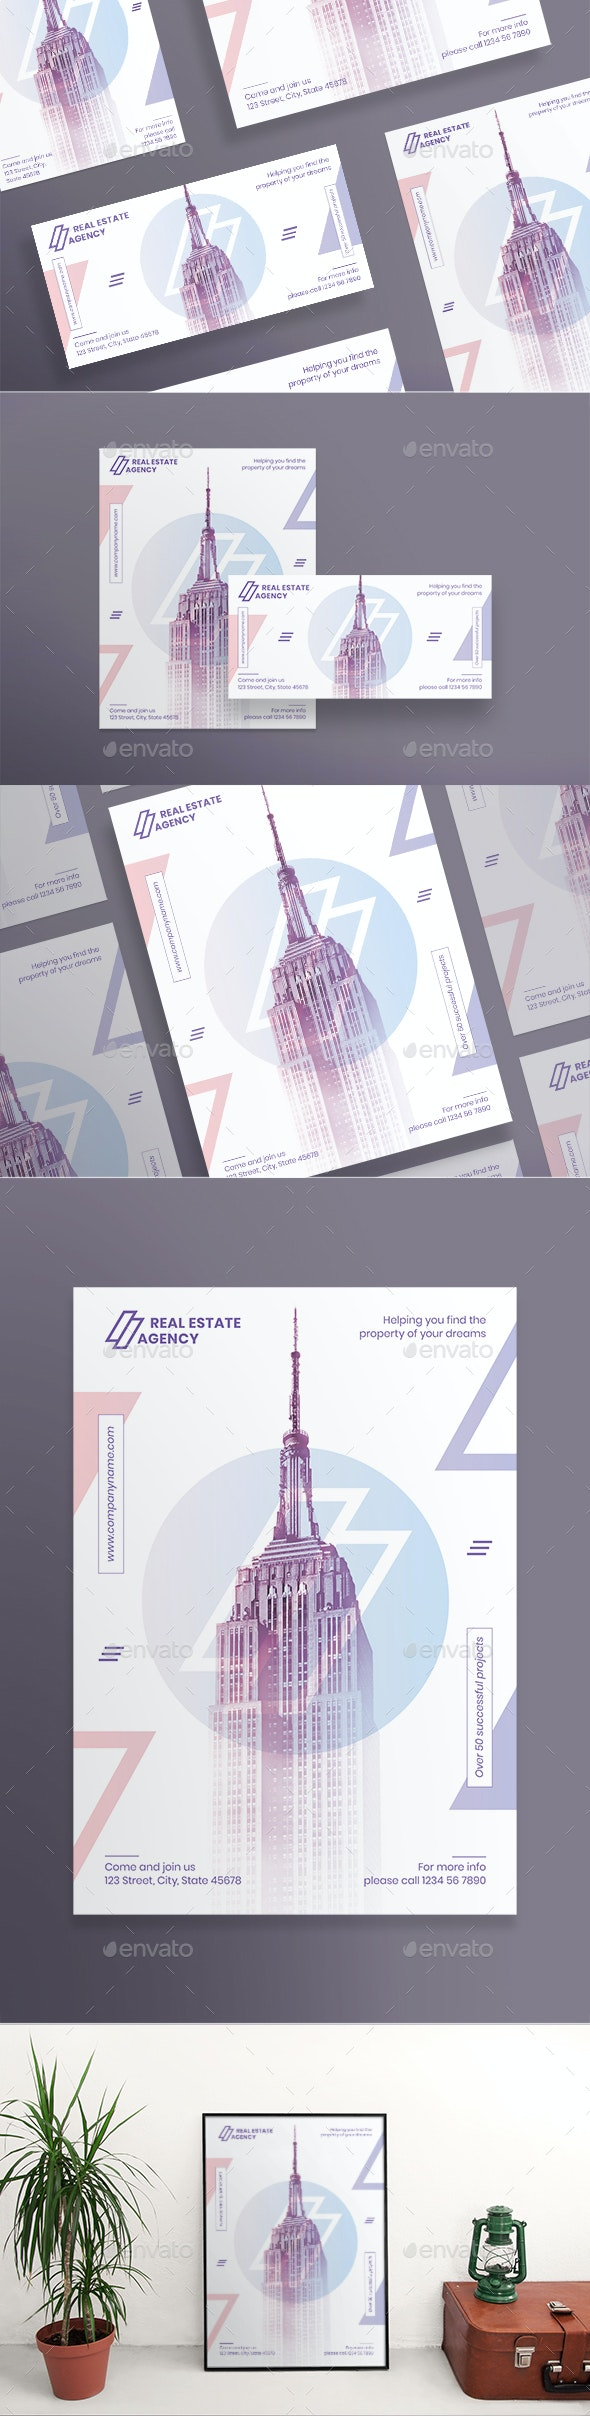 Real Estate Agency Flyers - Corporate Flyers